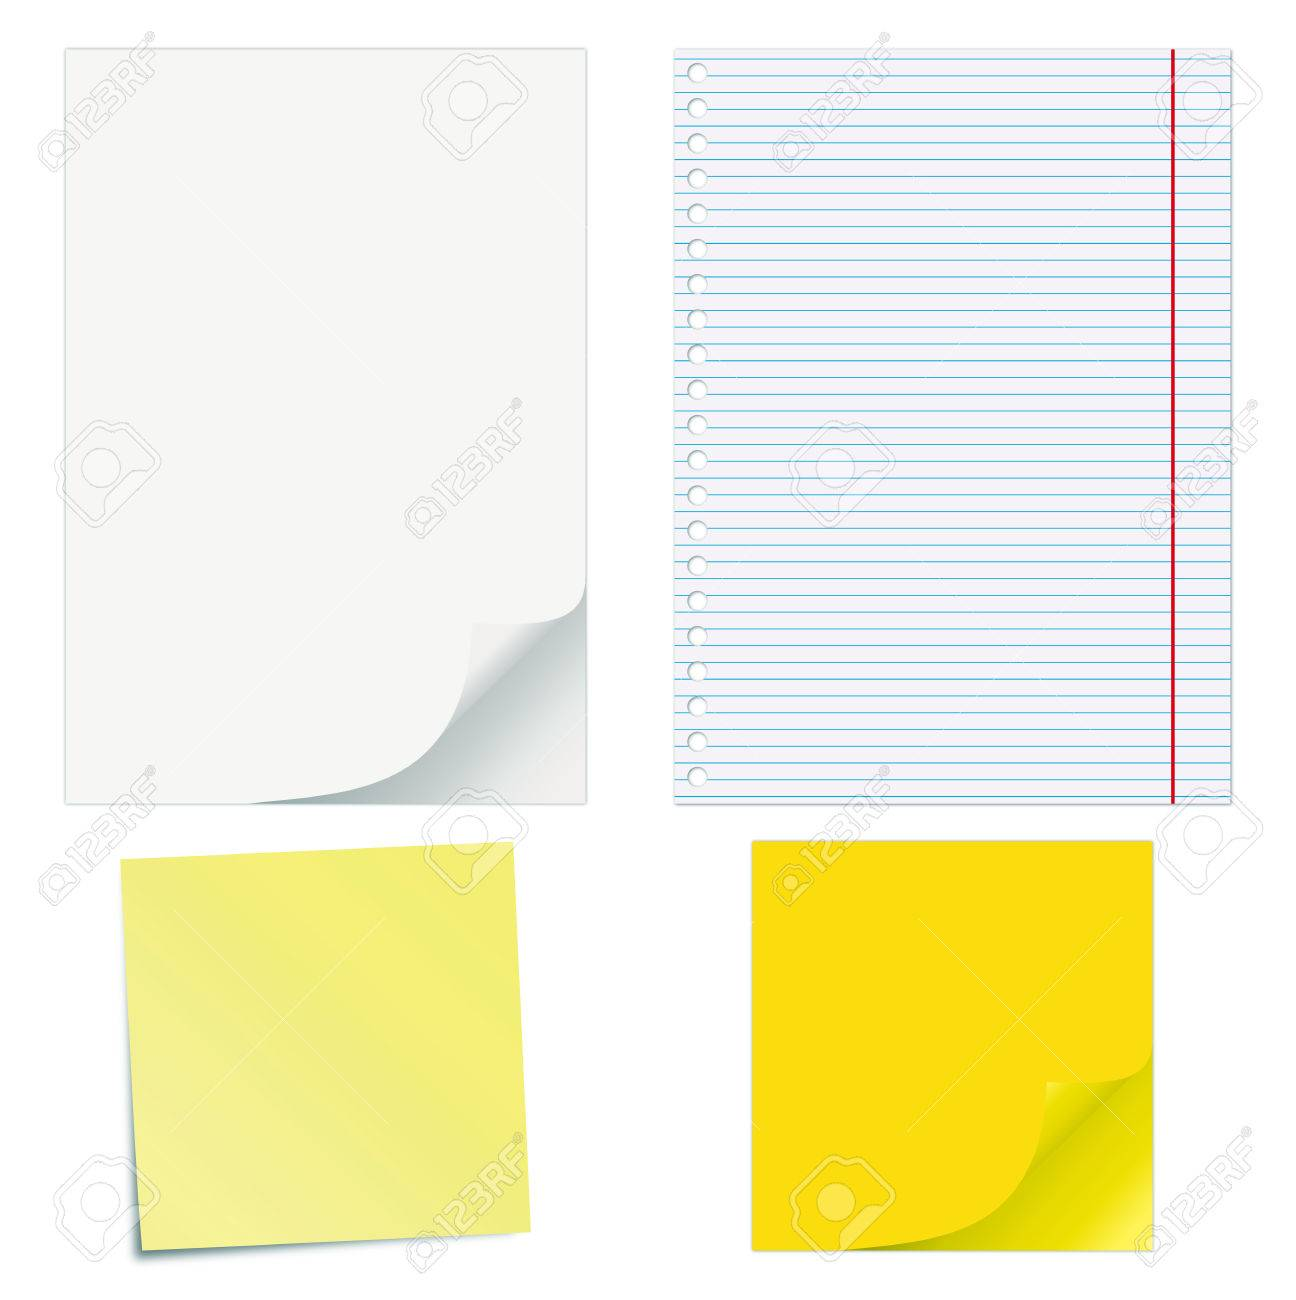 Blank Papers With Curled Corners And Notepad Lined Page Royalty – Blank Lined Page